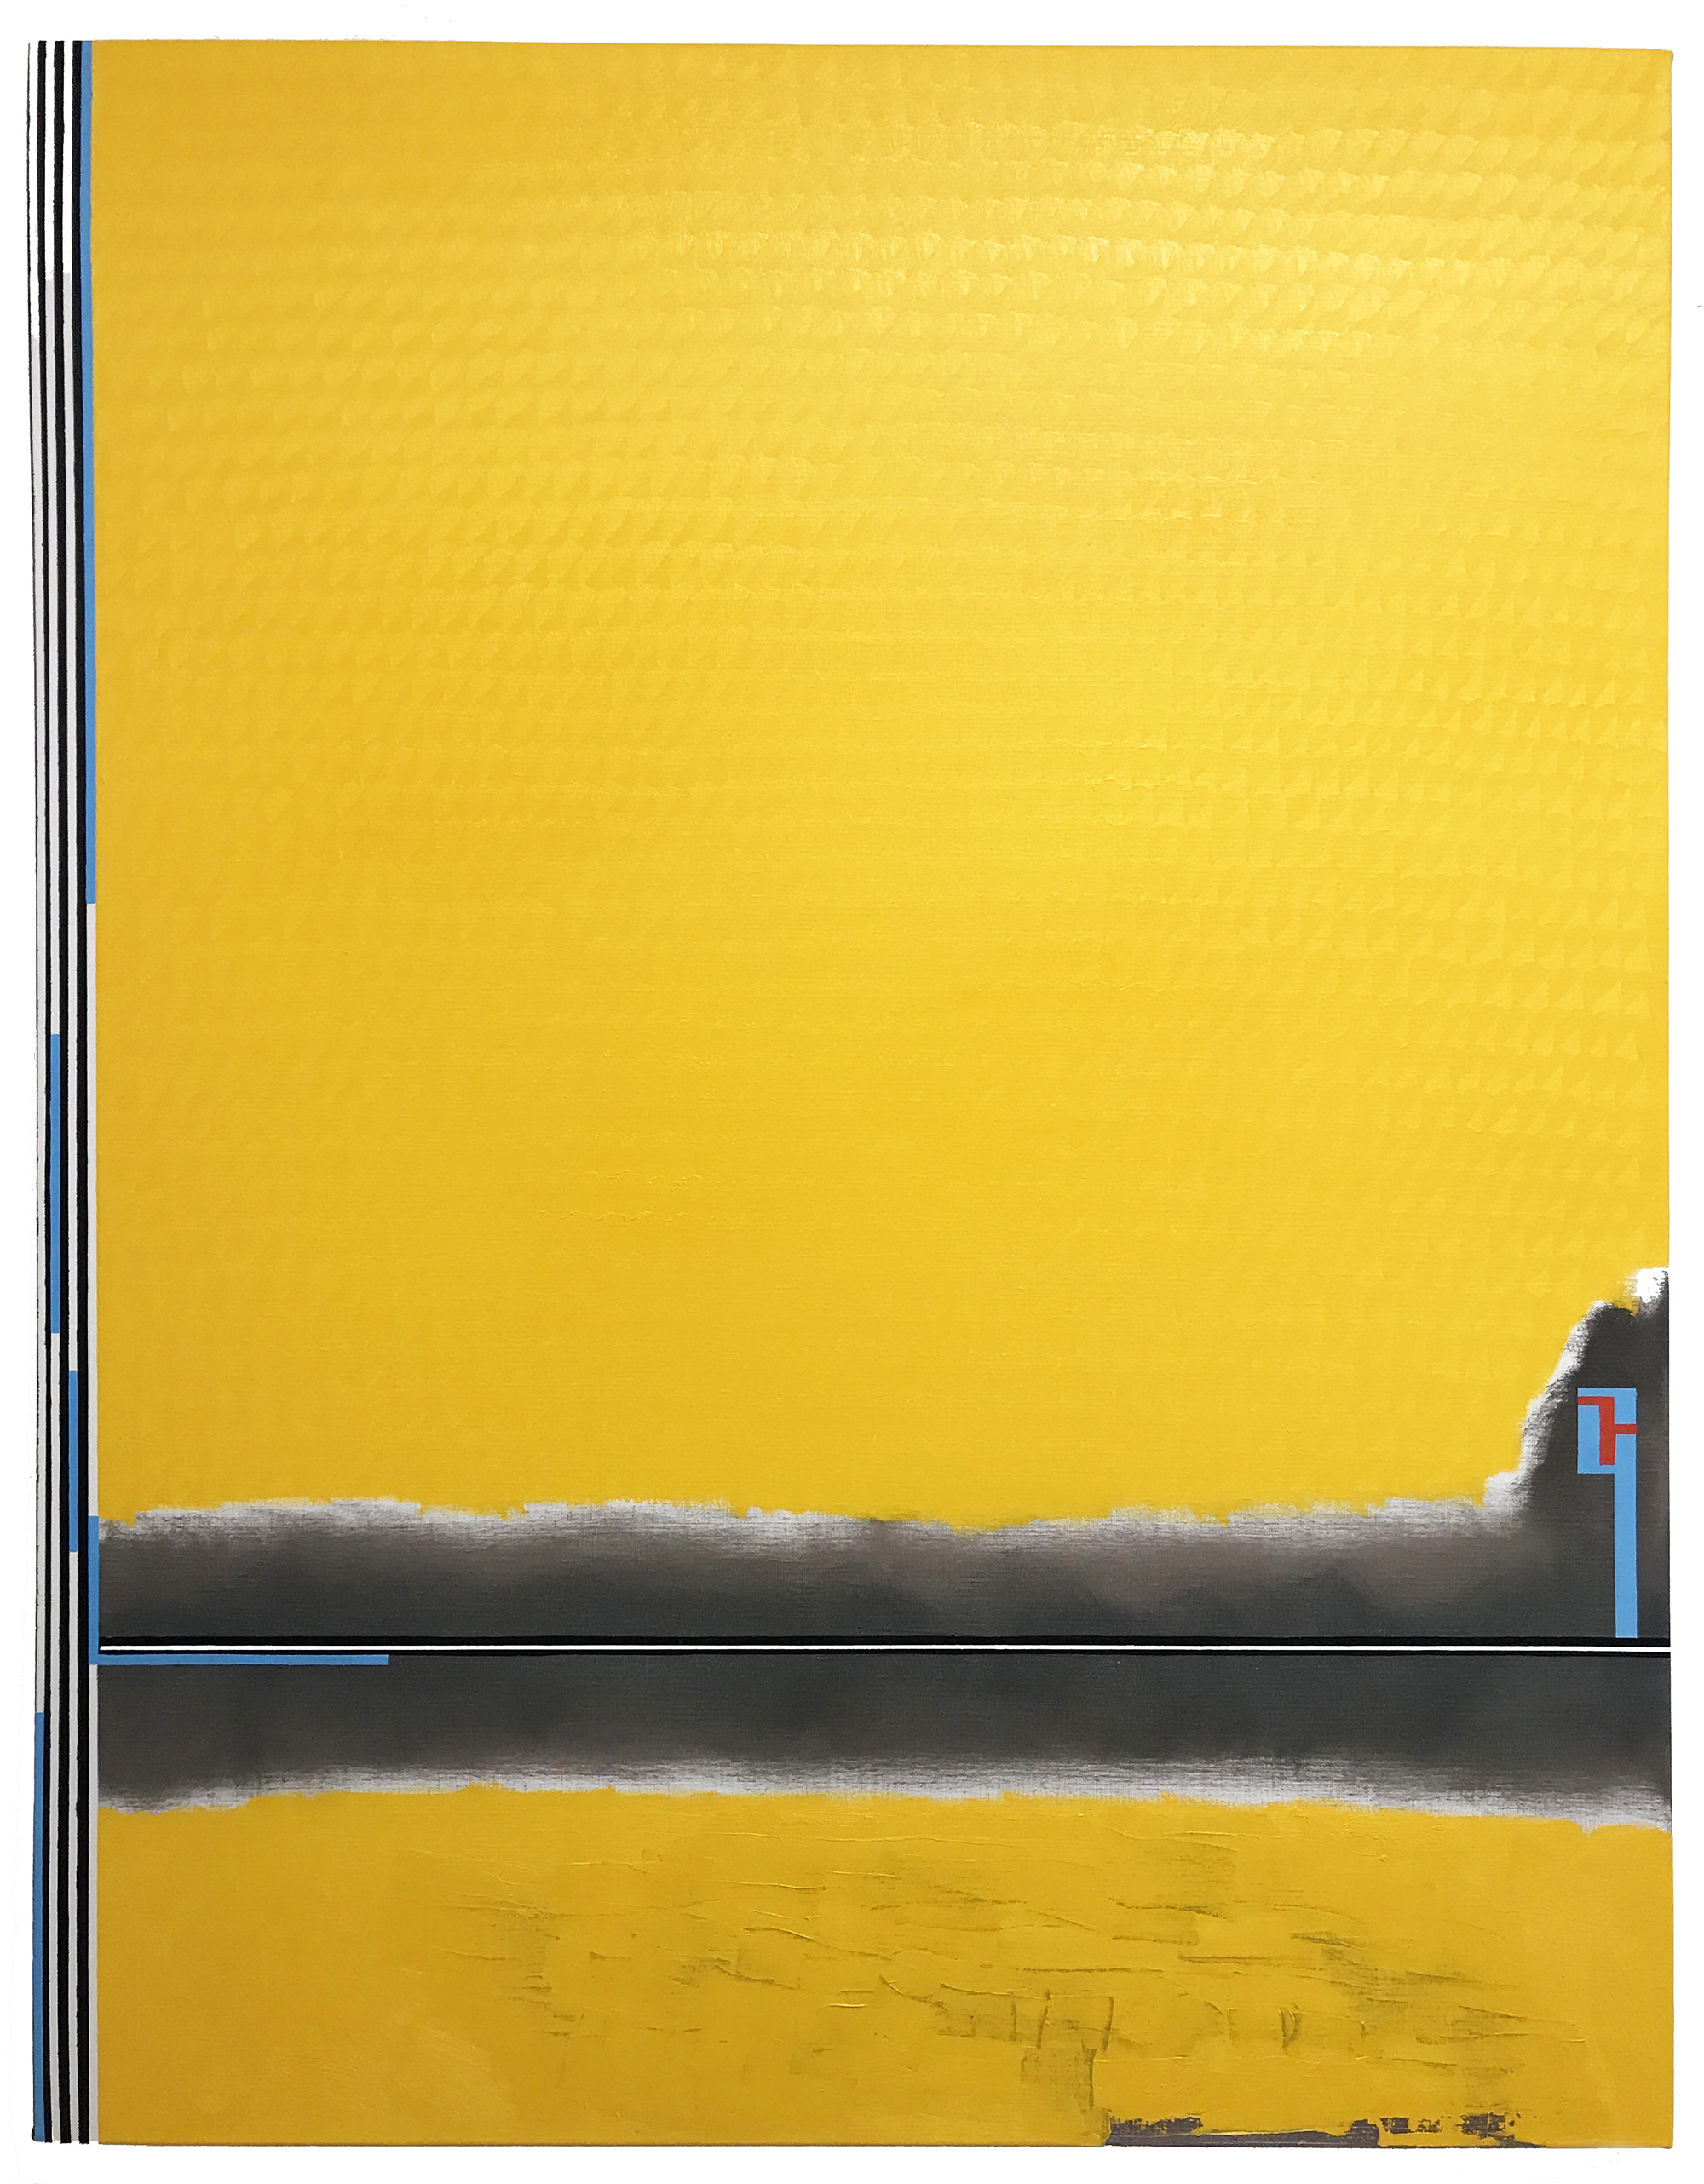 Yellowland -oil on canvas 146 x 114 cm- 2017 (private collection, San Francisco)